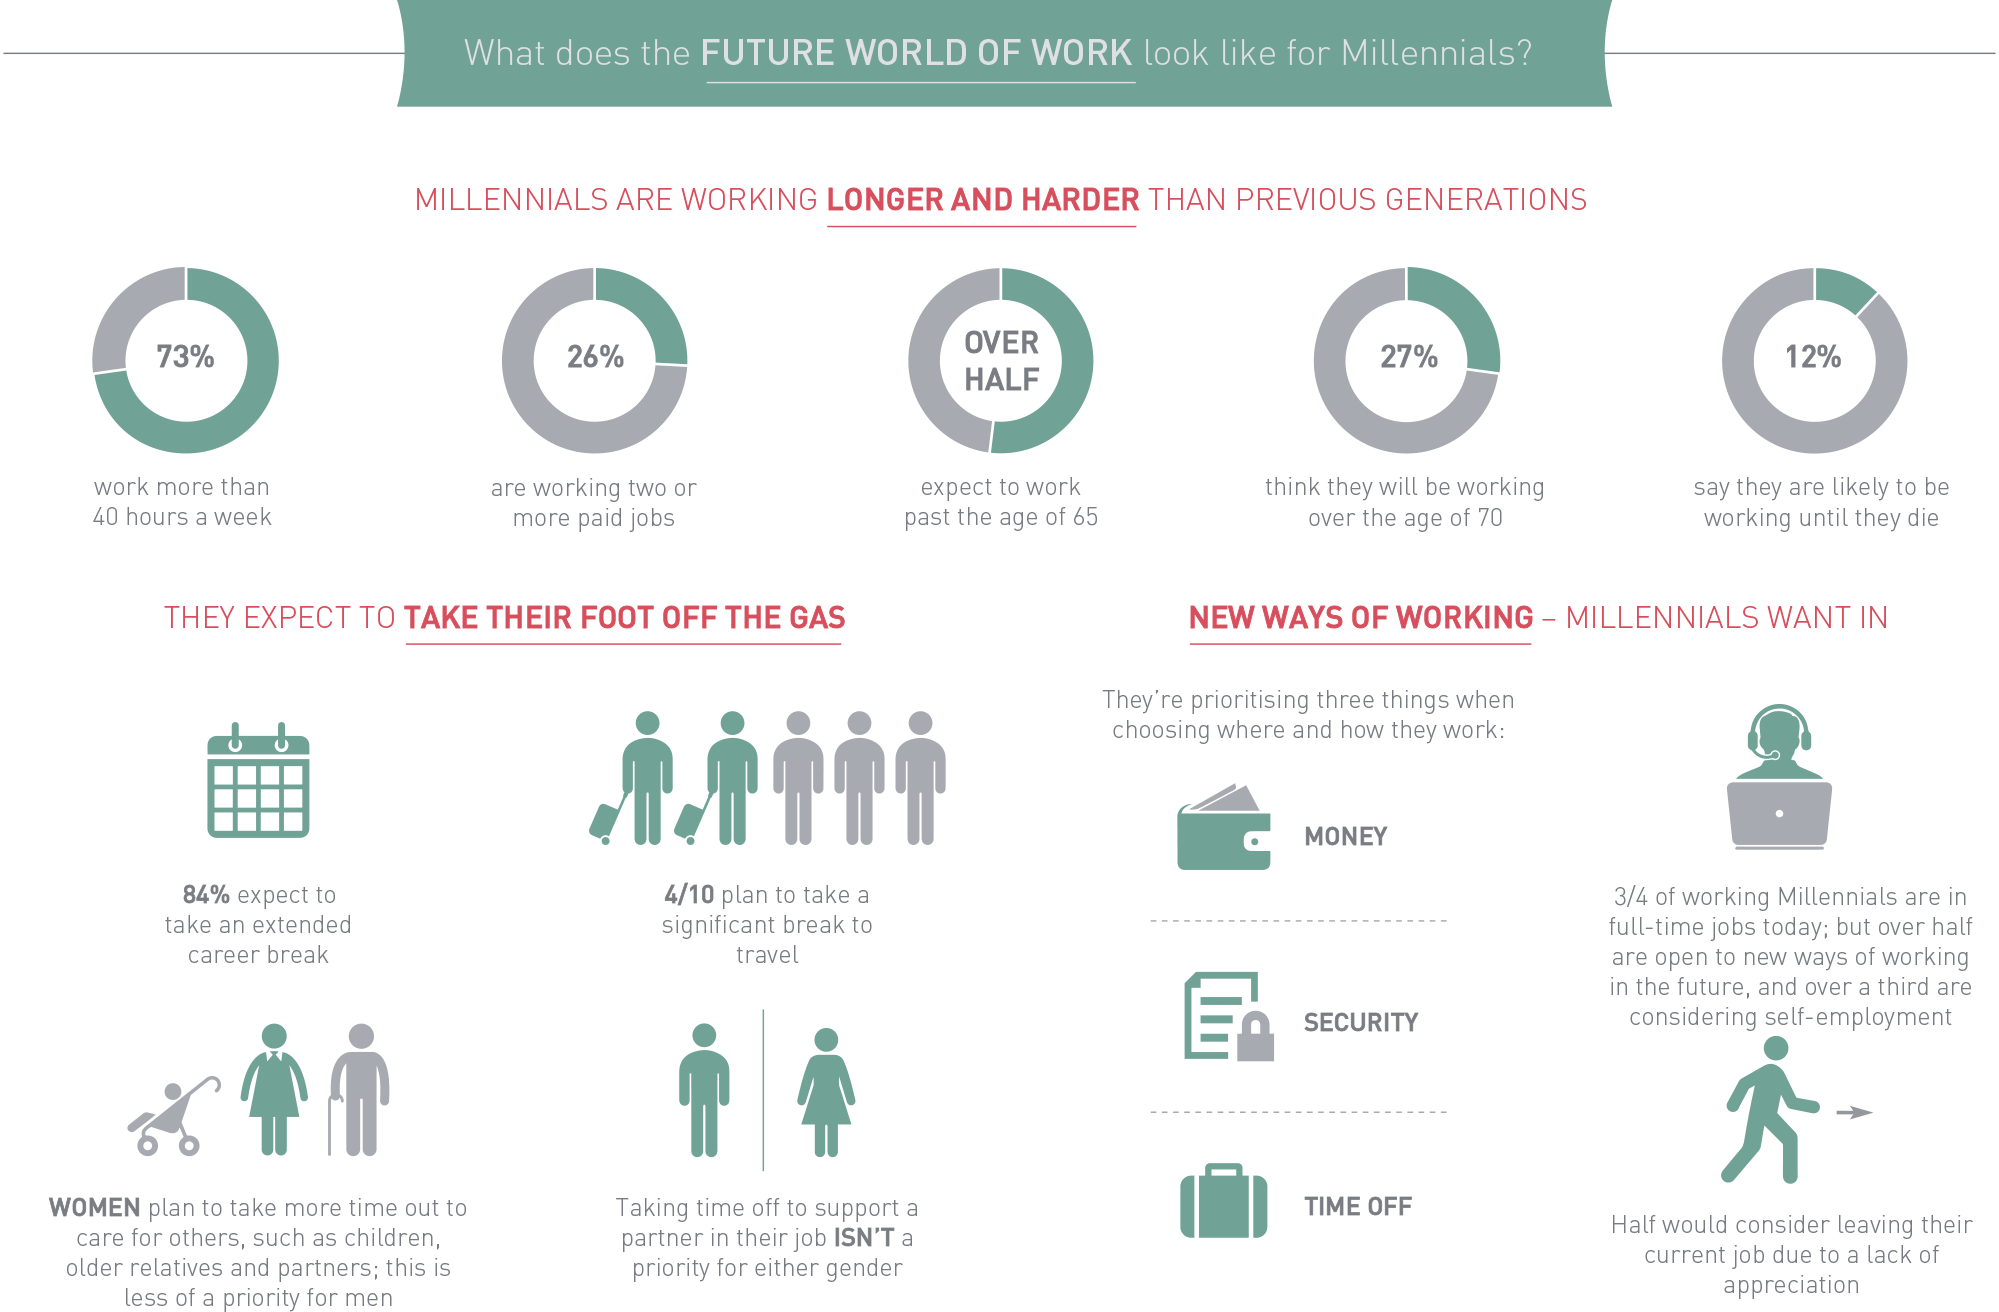 What does the FUTURE WORLD OF WORK look like for Millennials?